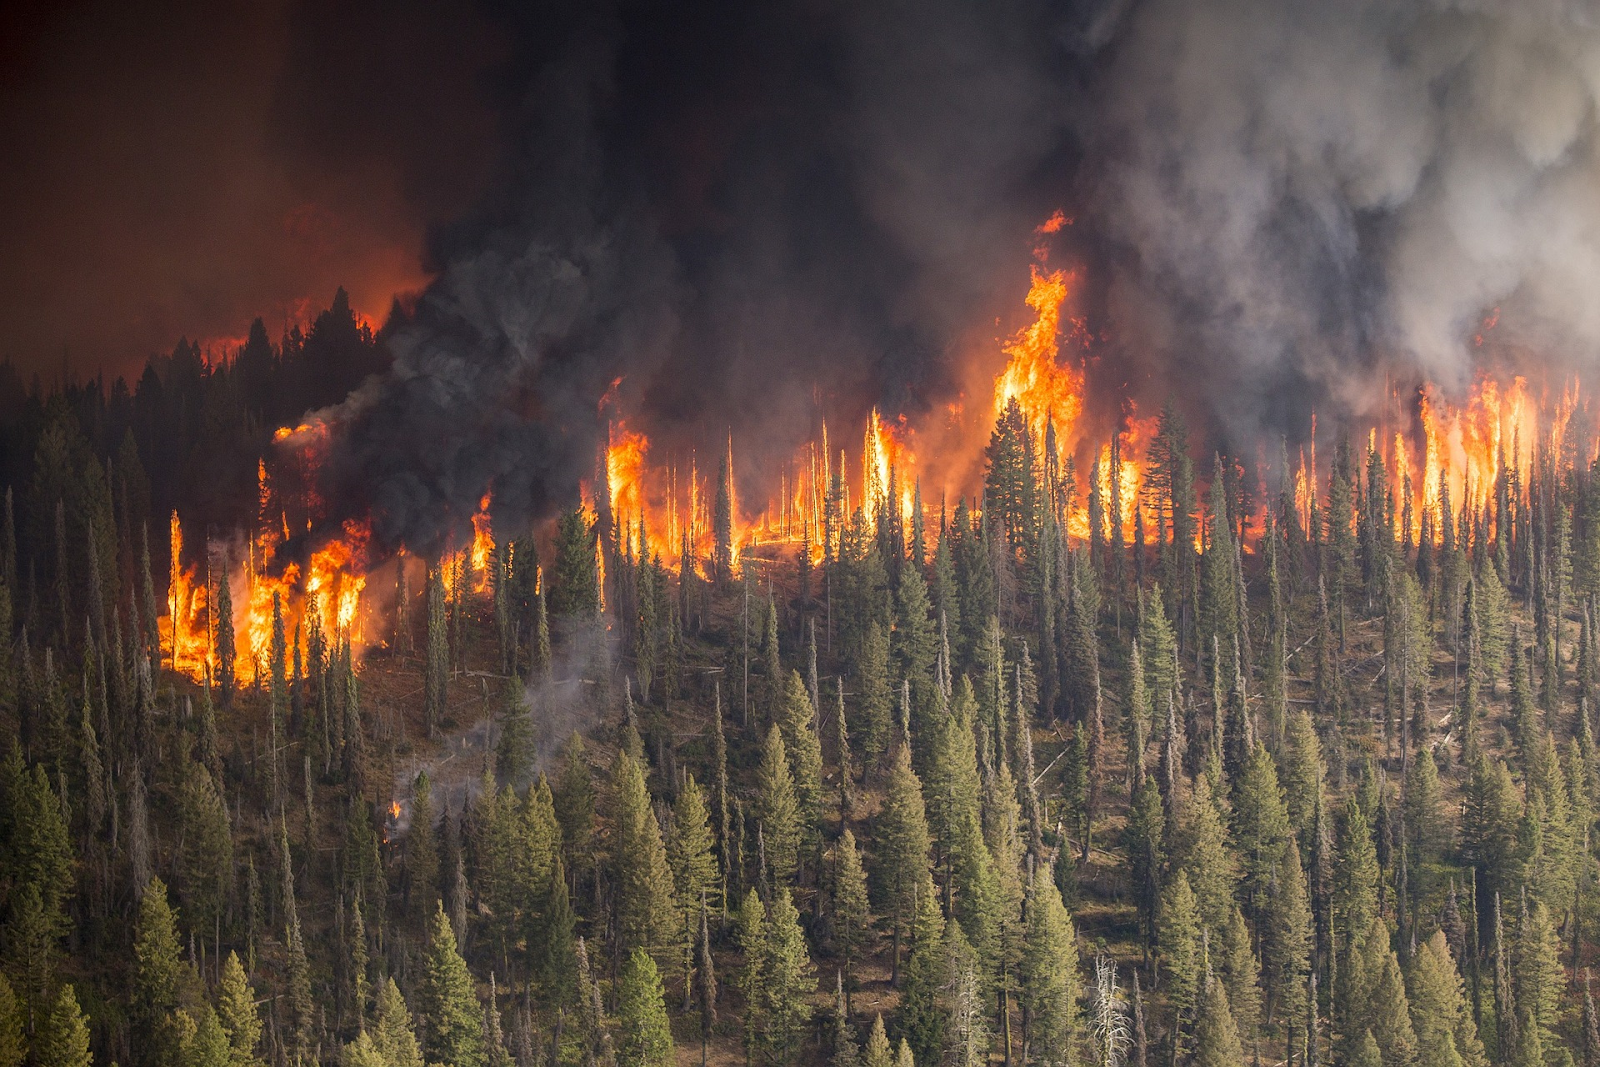 Wildfire consuming a forest.